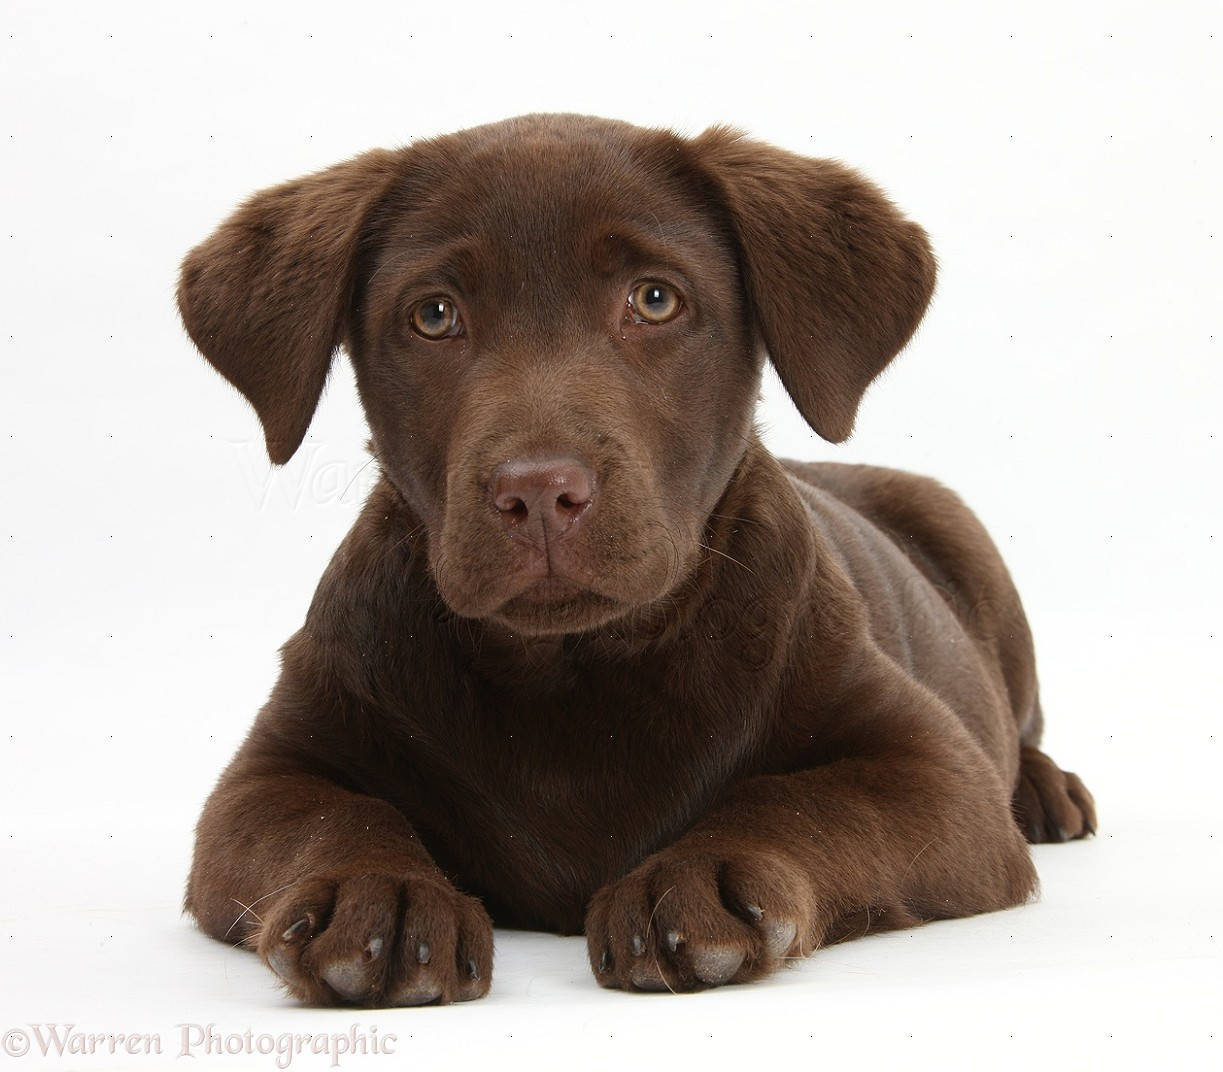 Wp33580 Chocolate Labrador Pup Lucie 3 Months Old Labrador Brown 5 Month Old 1223x1072 Download Hd Wallpaper Wallpapertip